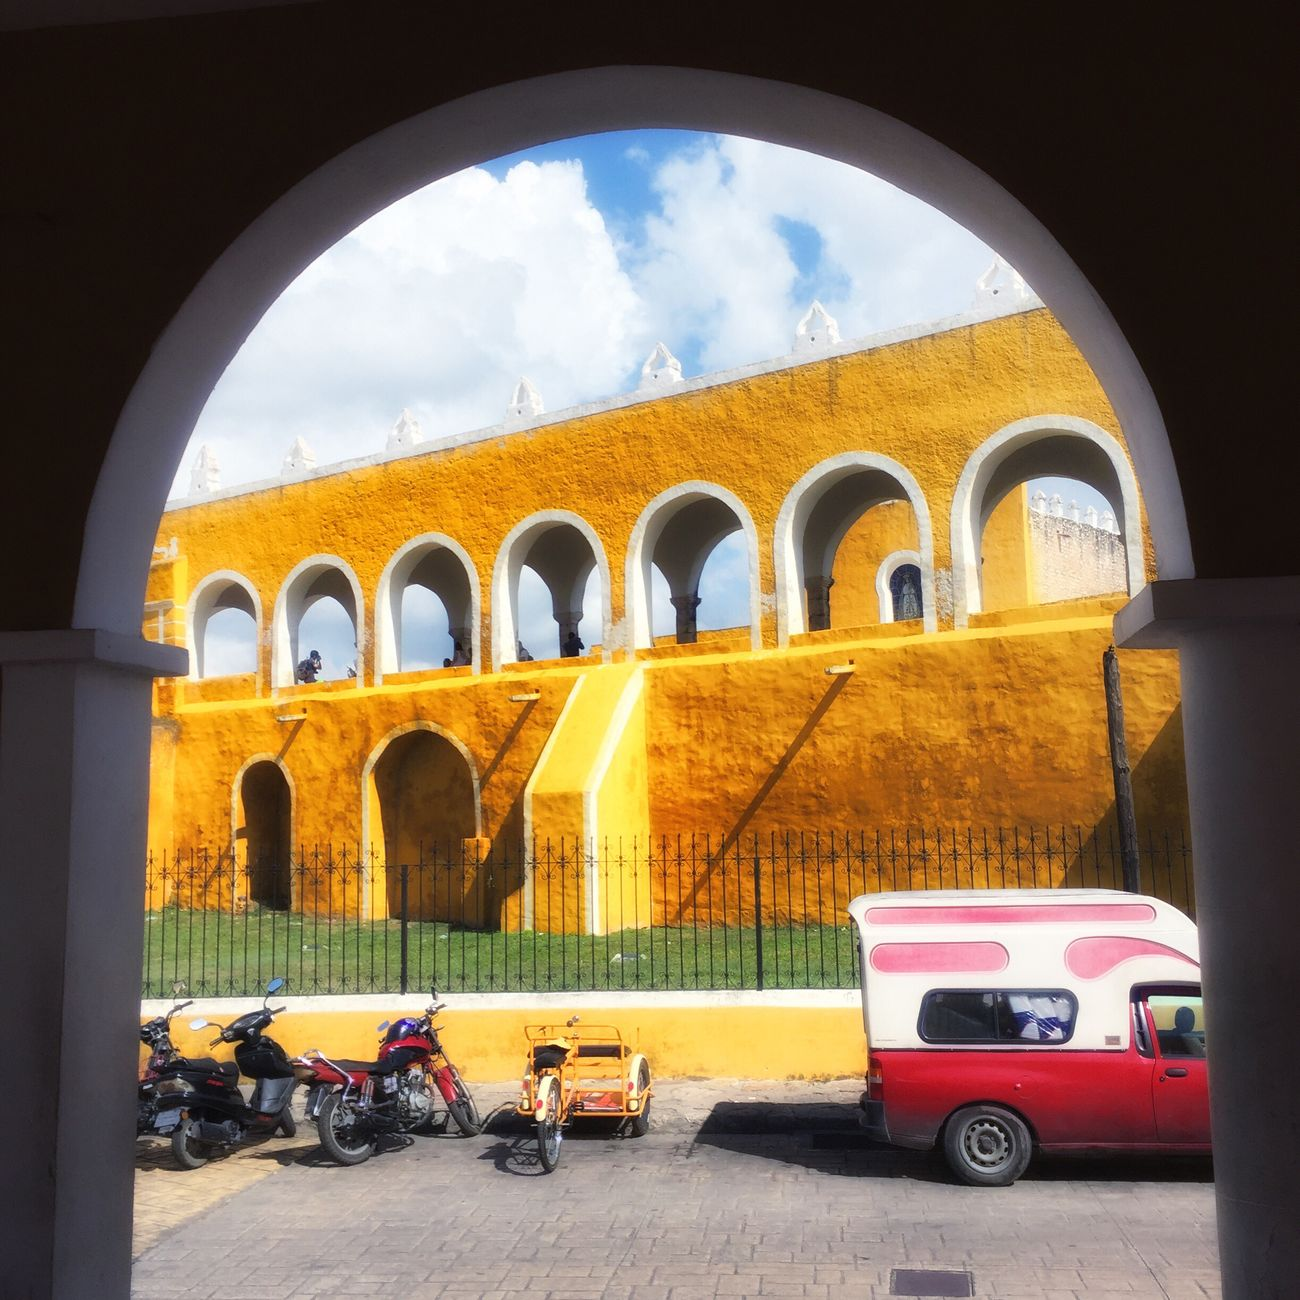 Izamal Izamal Yucatan Church Mexico Yúcatan Yucatan Mexico Yellowcity Yellow Color Window Window View Window Frame Architecture Built Structure Parking Building Exterior No People Architecture Iphoneonly IPhoneography Outdoors History